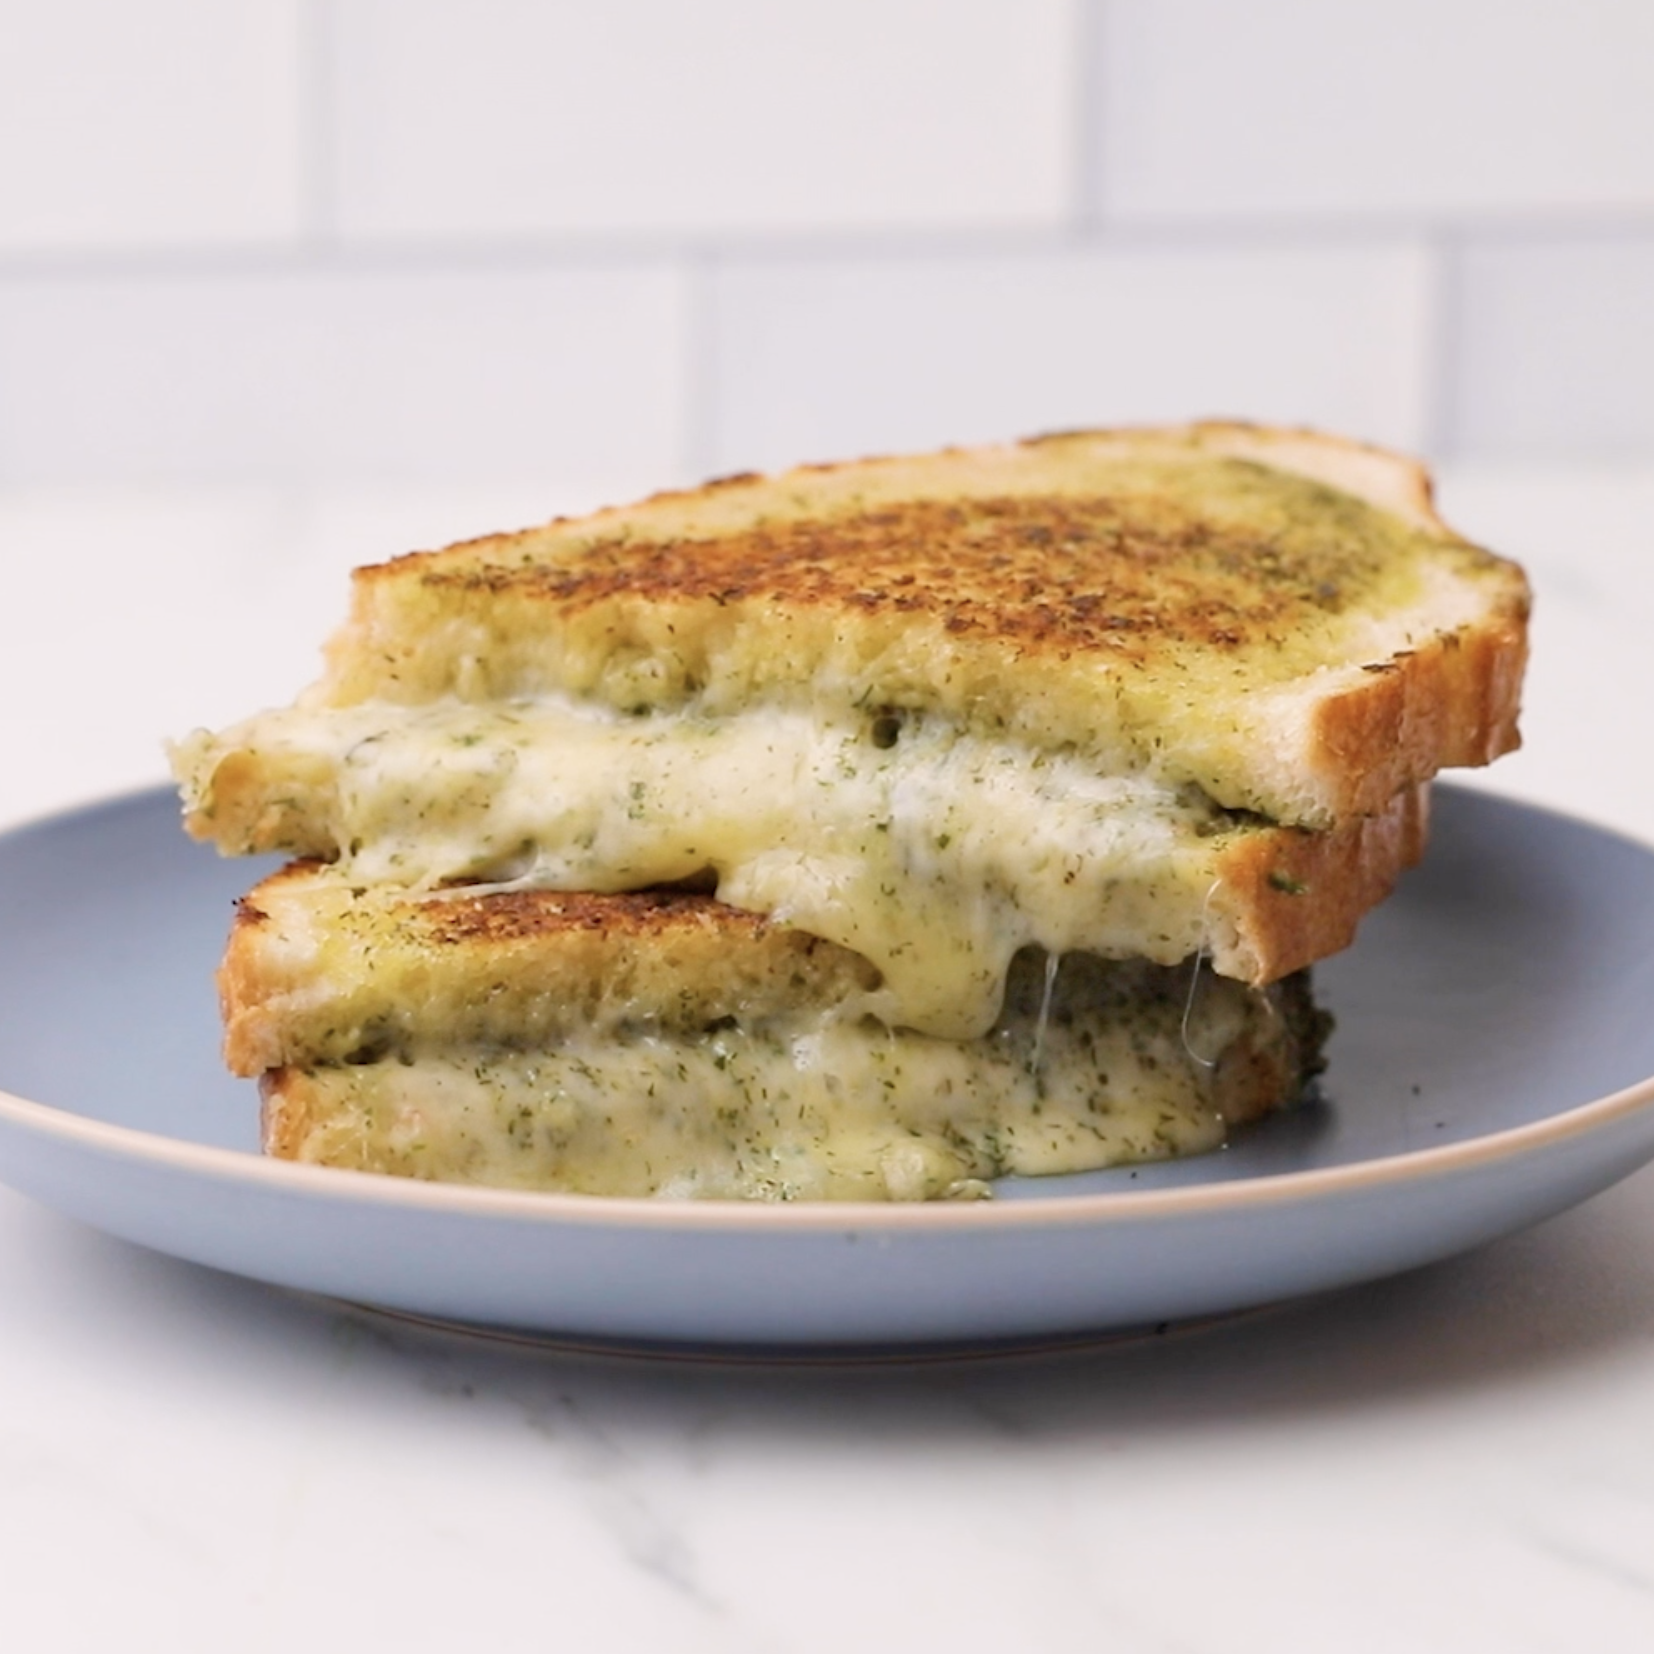 Garlic and Dill Pesto Grilled Cheese